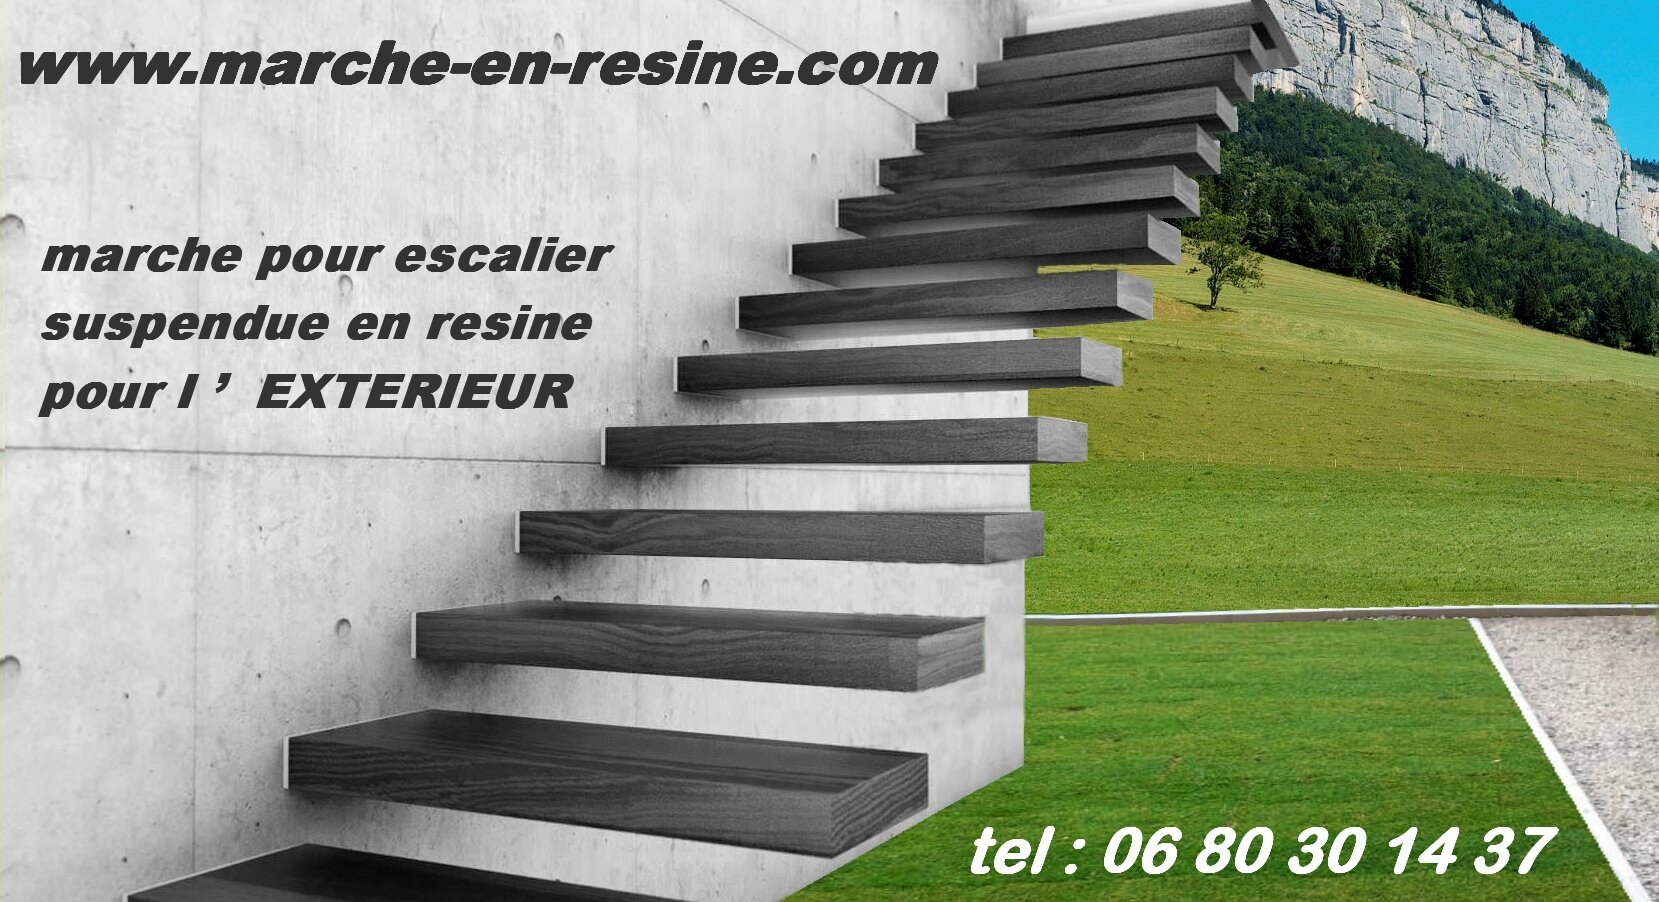 Decatoire escalier suspendu marches suspendues monolith escalier suspendu exterieurmarches suspendues exterieurmarche pour piscineswimming pool steps